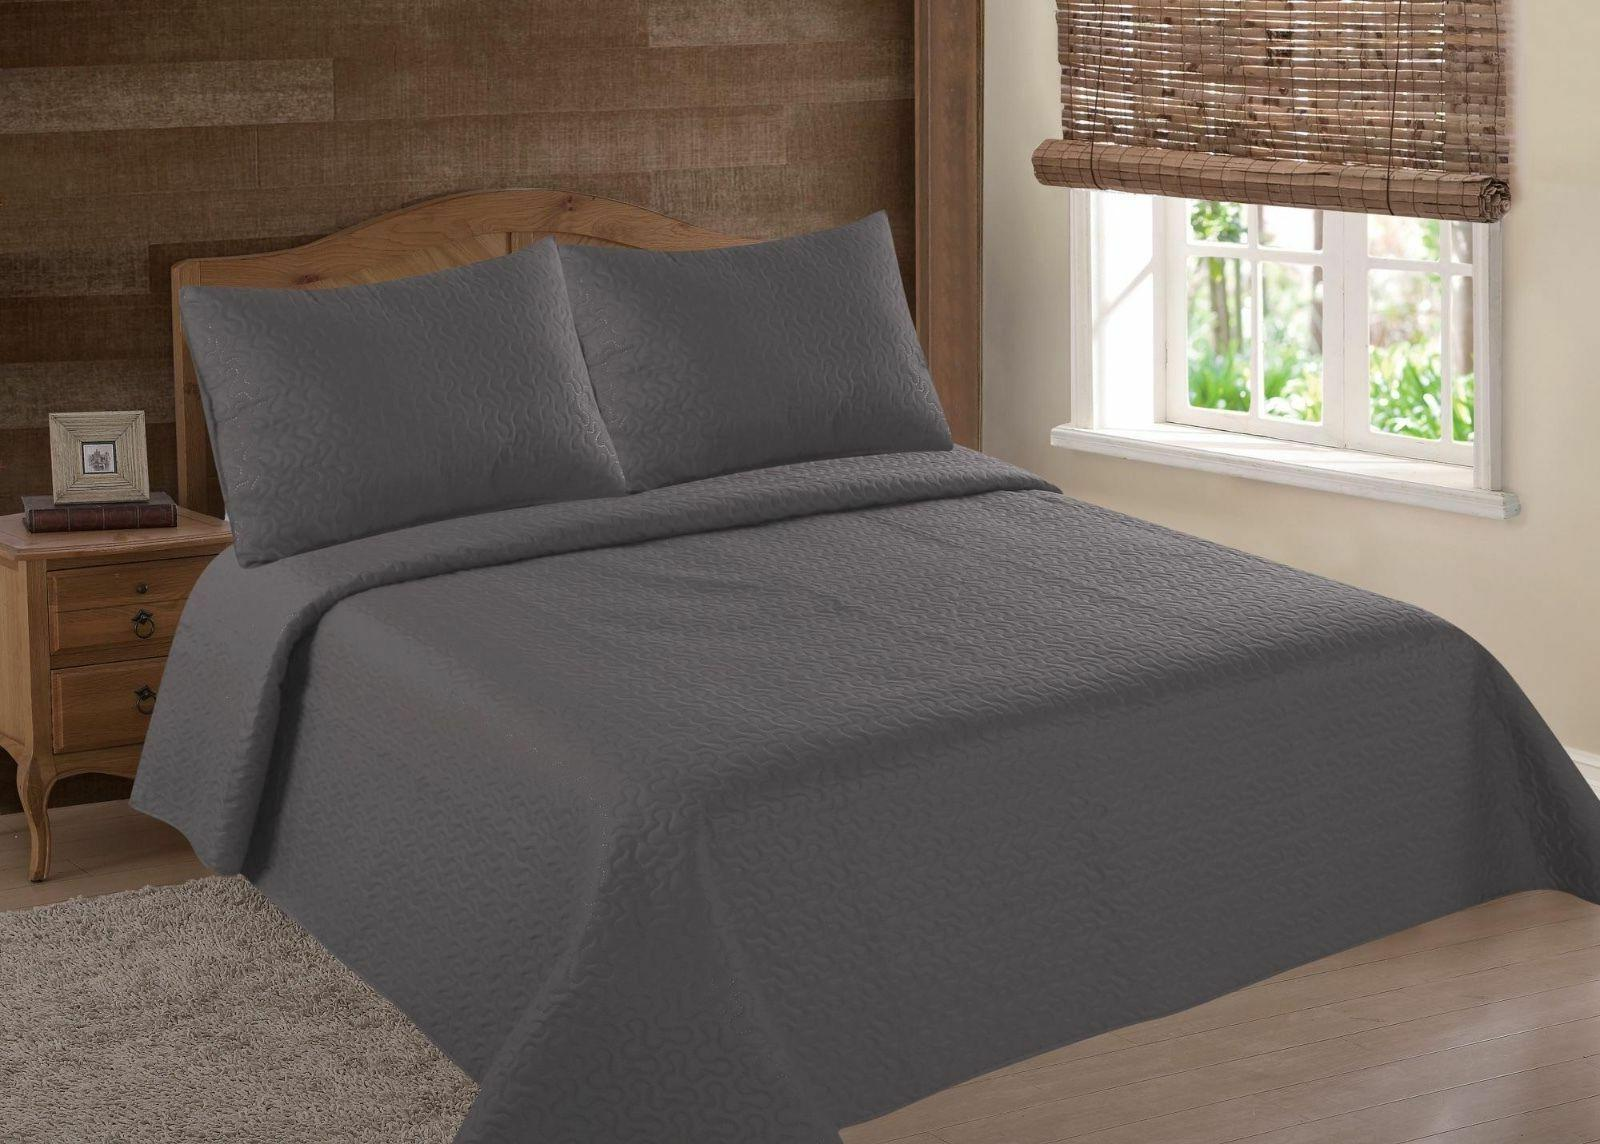 midwest charcoal nena solid quilt bedding bedspread